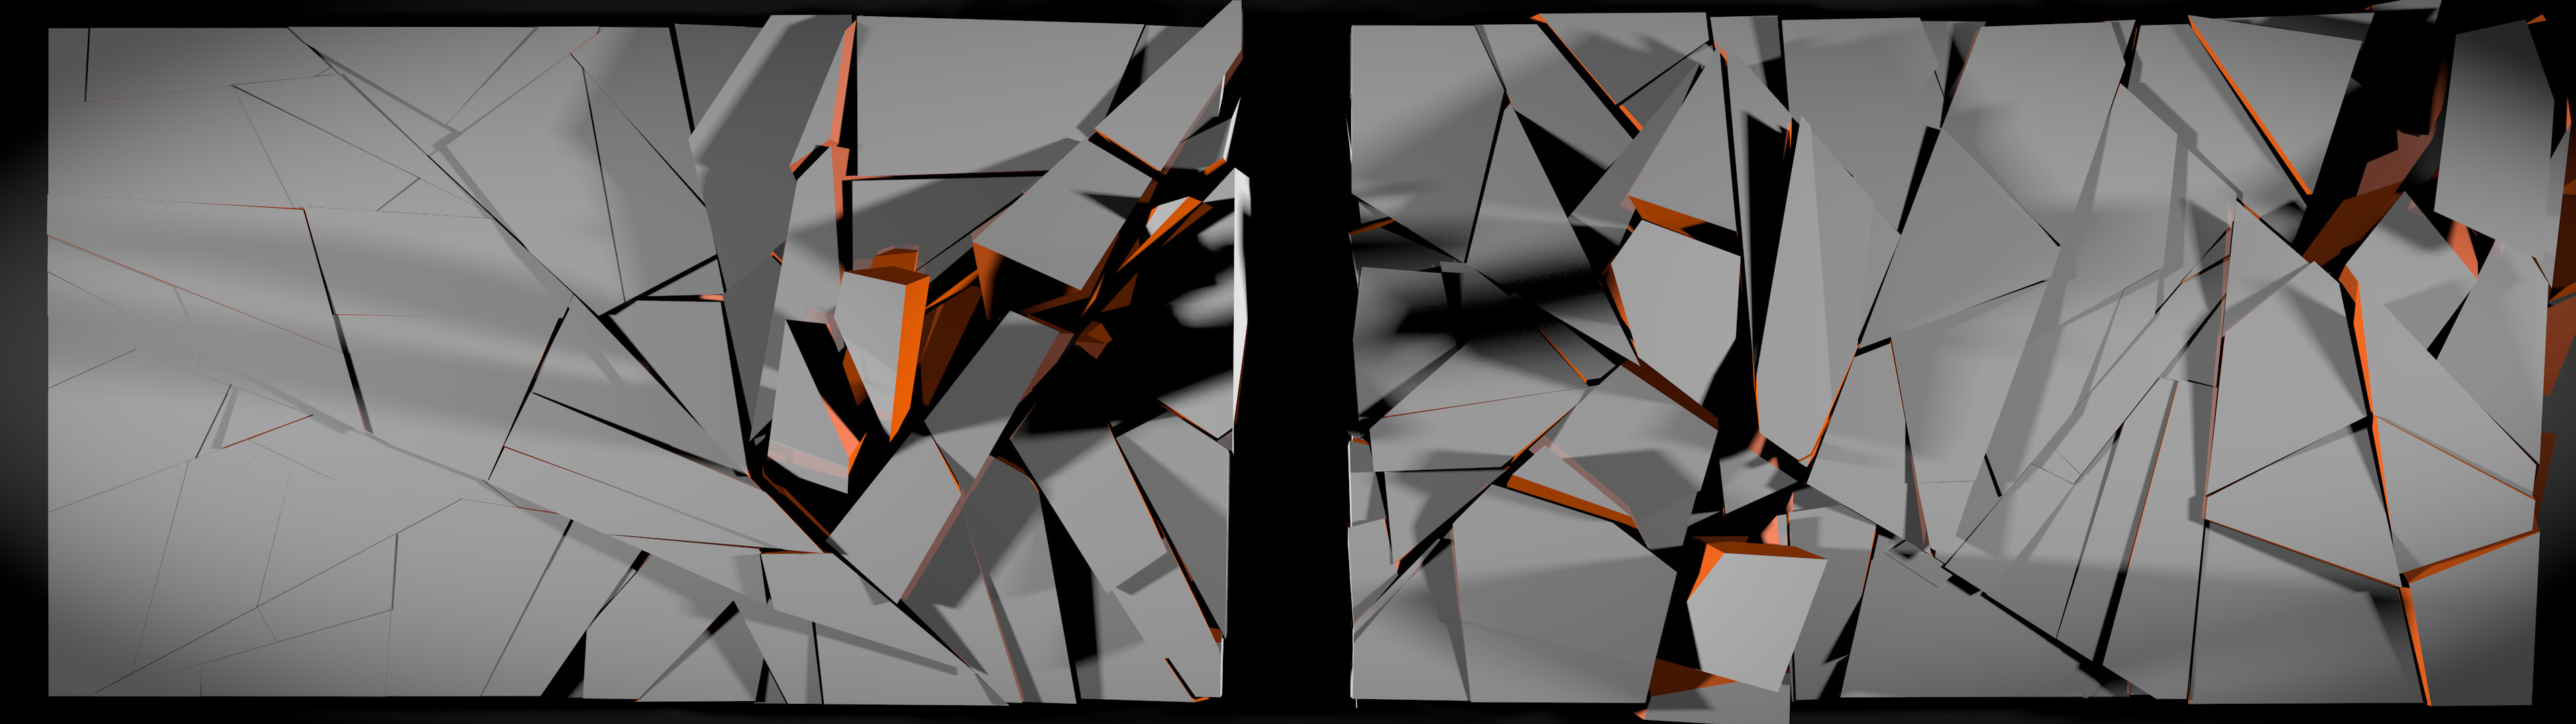 3840x1080 Abstract Dualscreen Wallpaper by Paratomick Abstract Dualscreen Wallpaper  by Paratomick